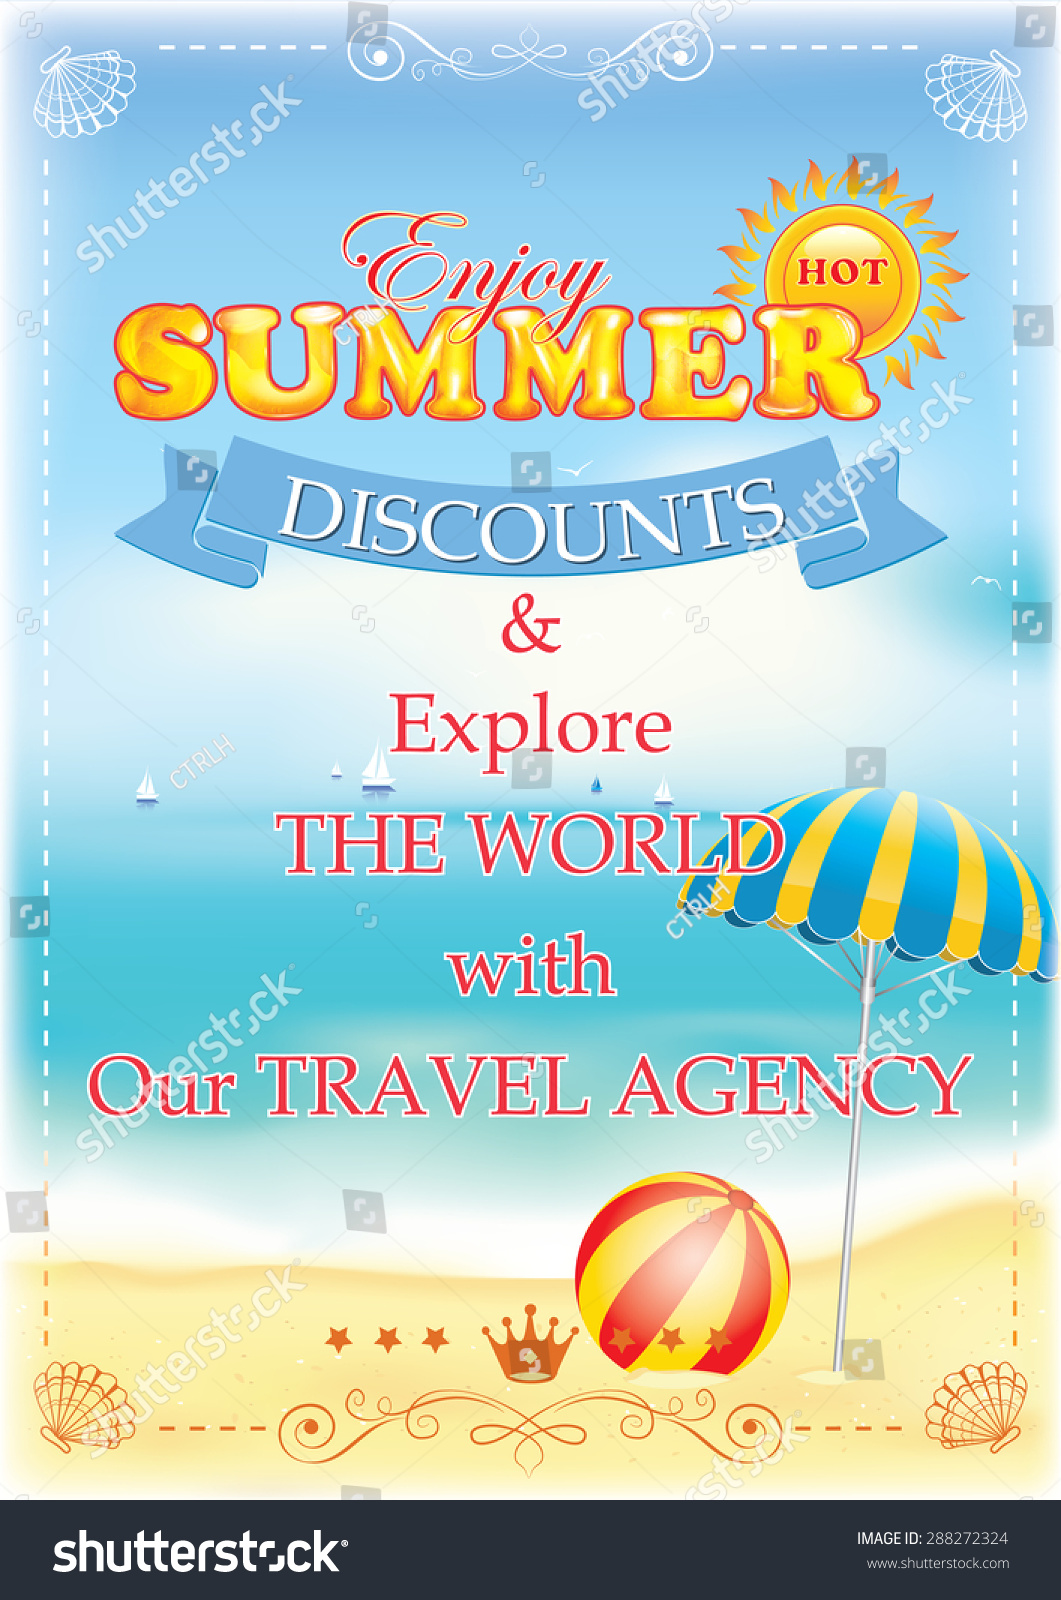 Travel Agent Questions